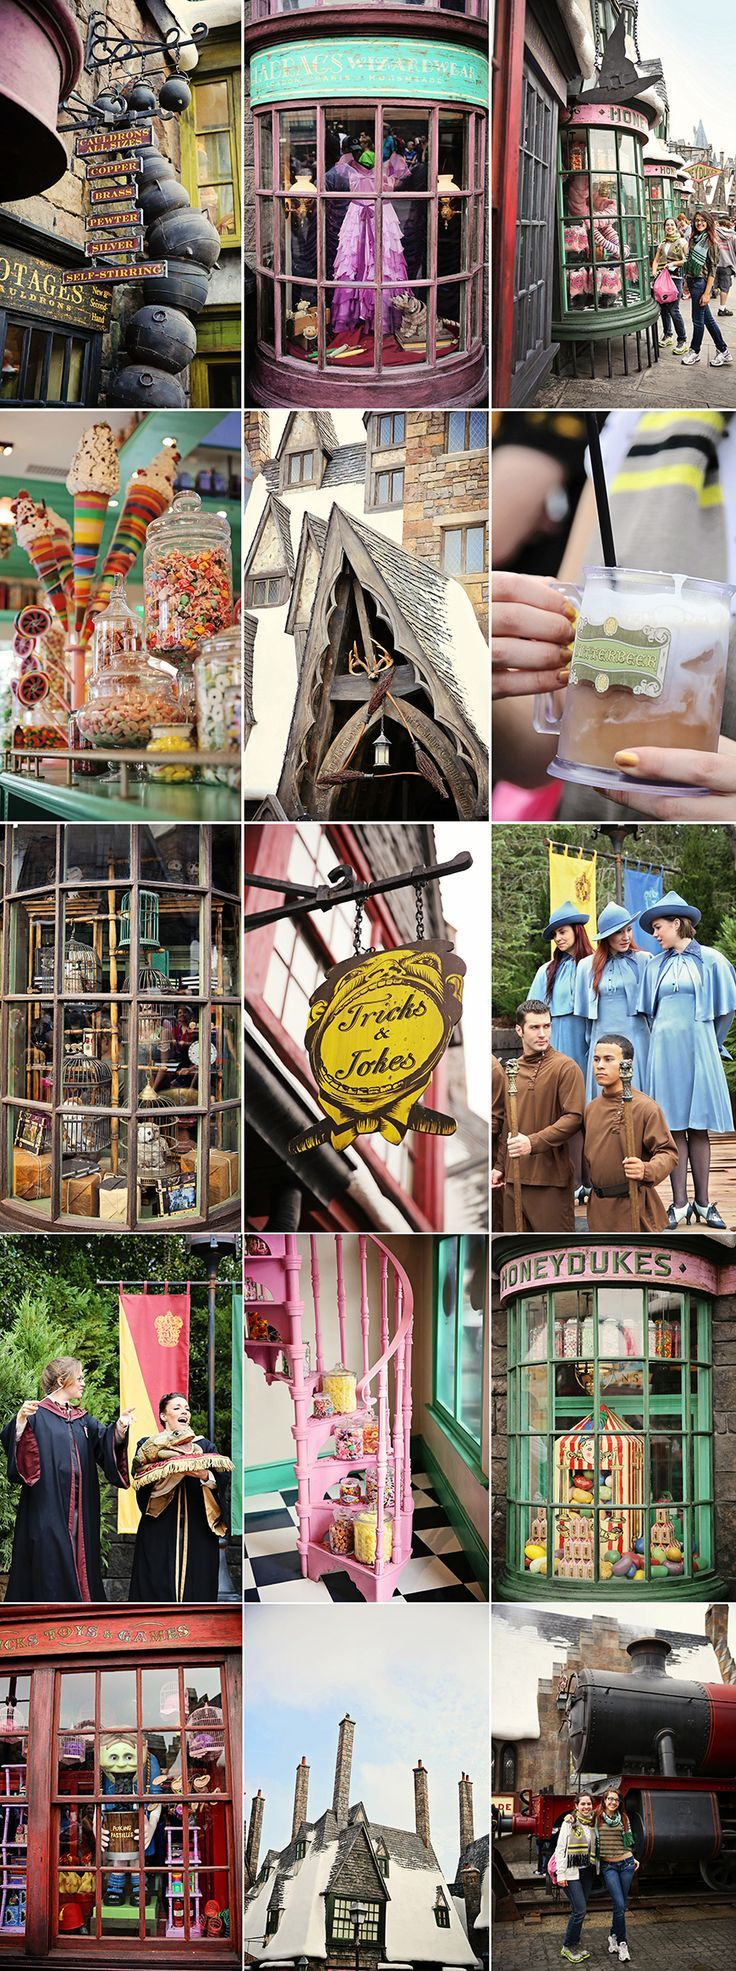 Scenes from Hogsmeade Village at Universal Islands of Adventure, Orlando, Florida